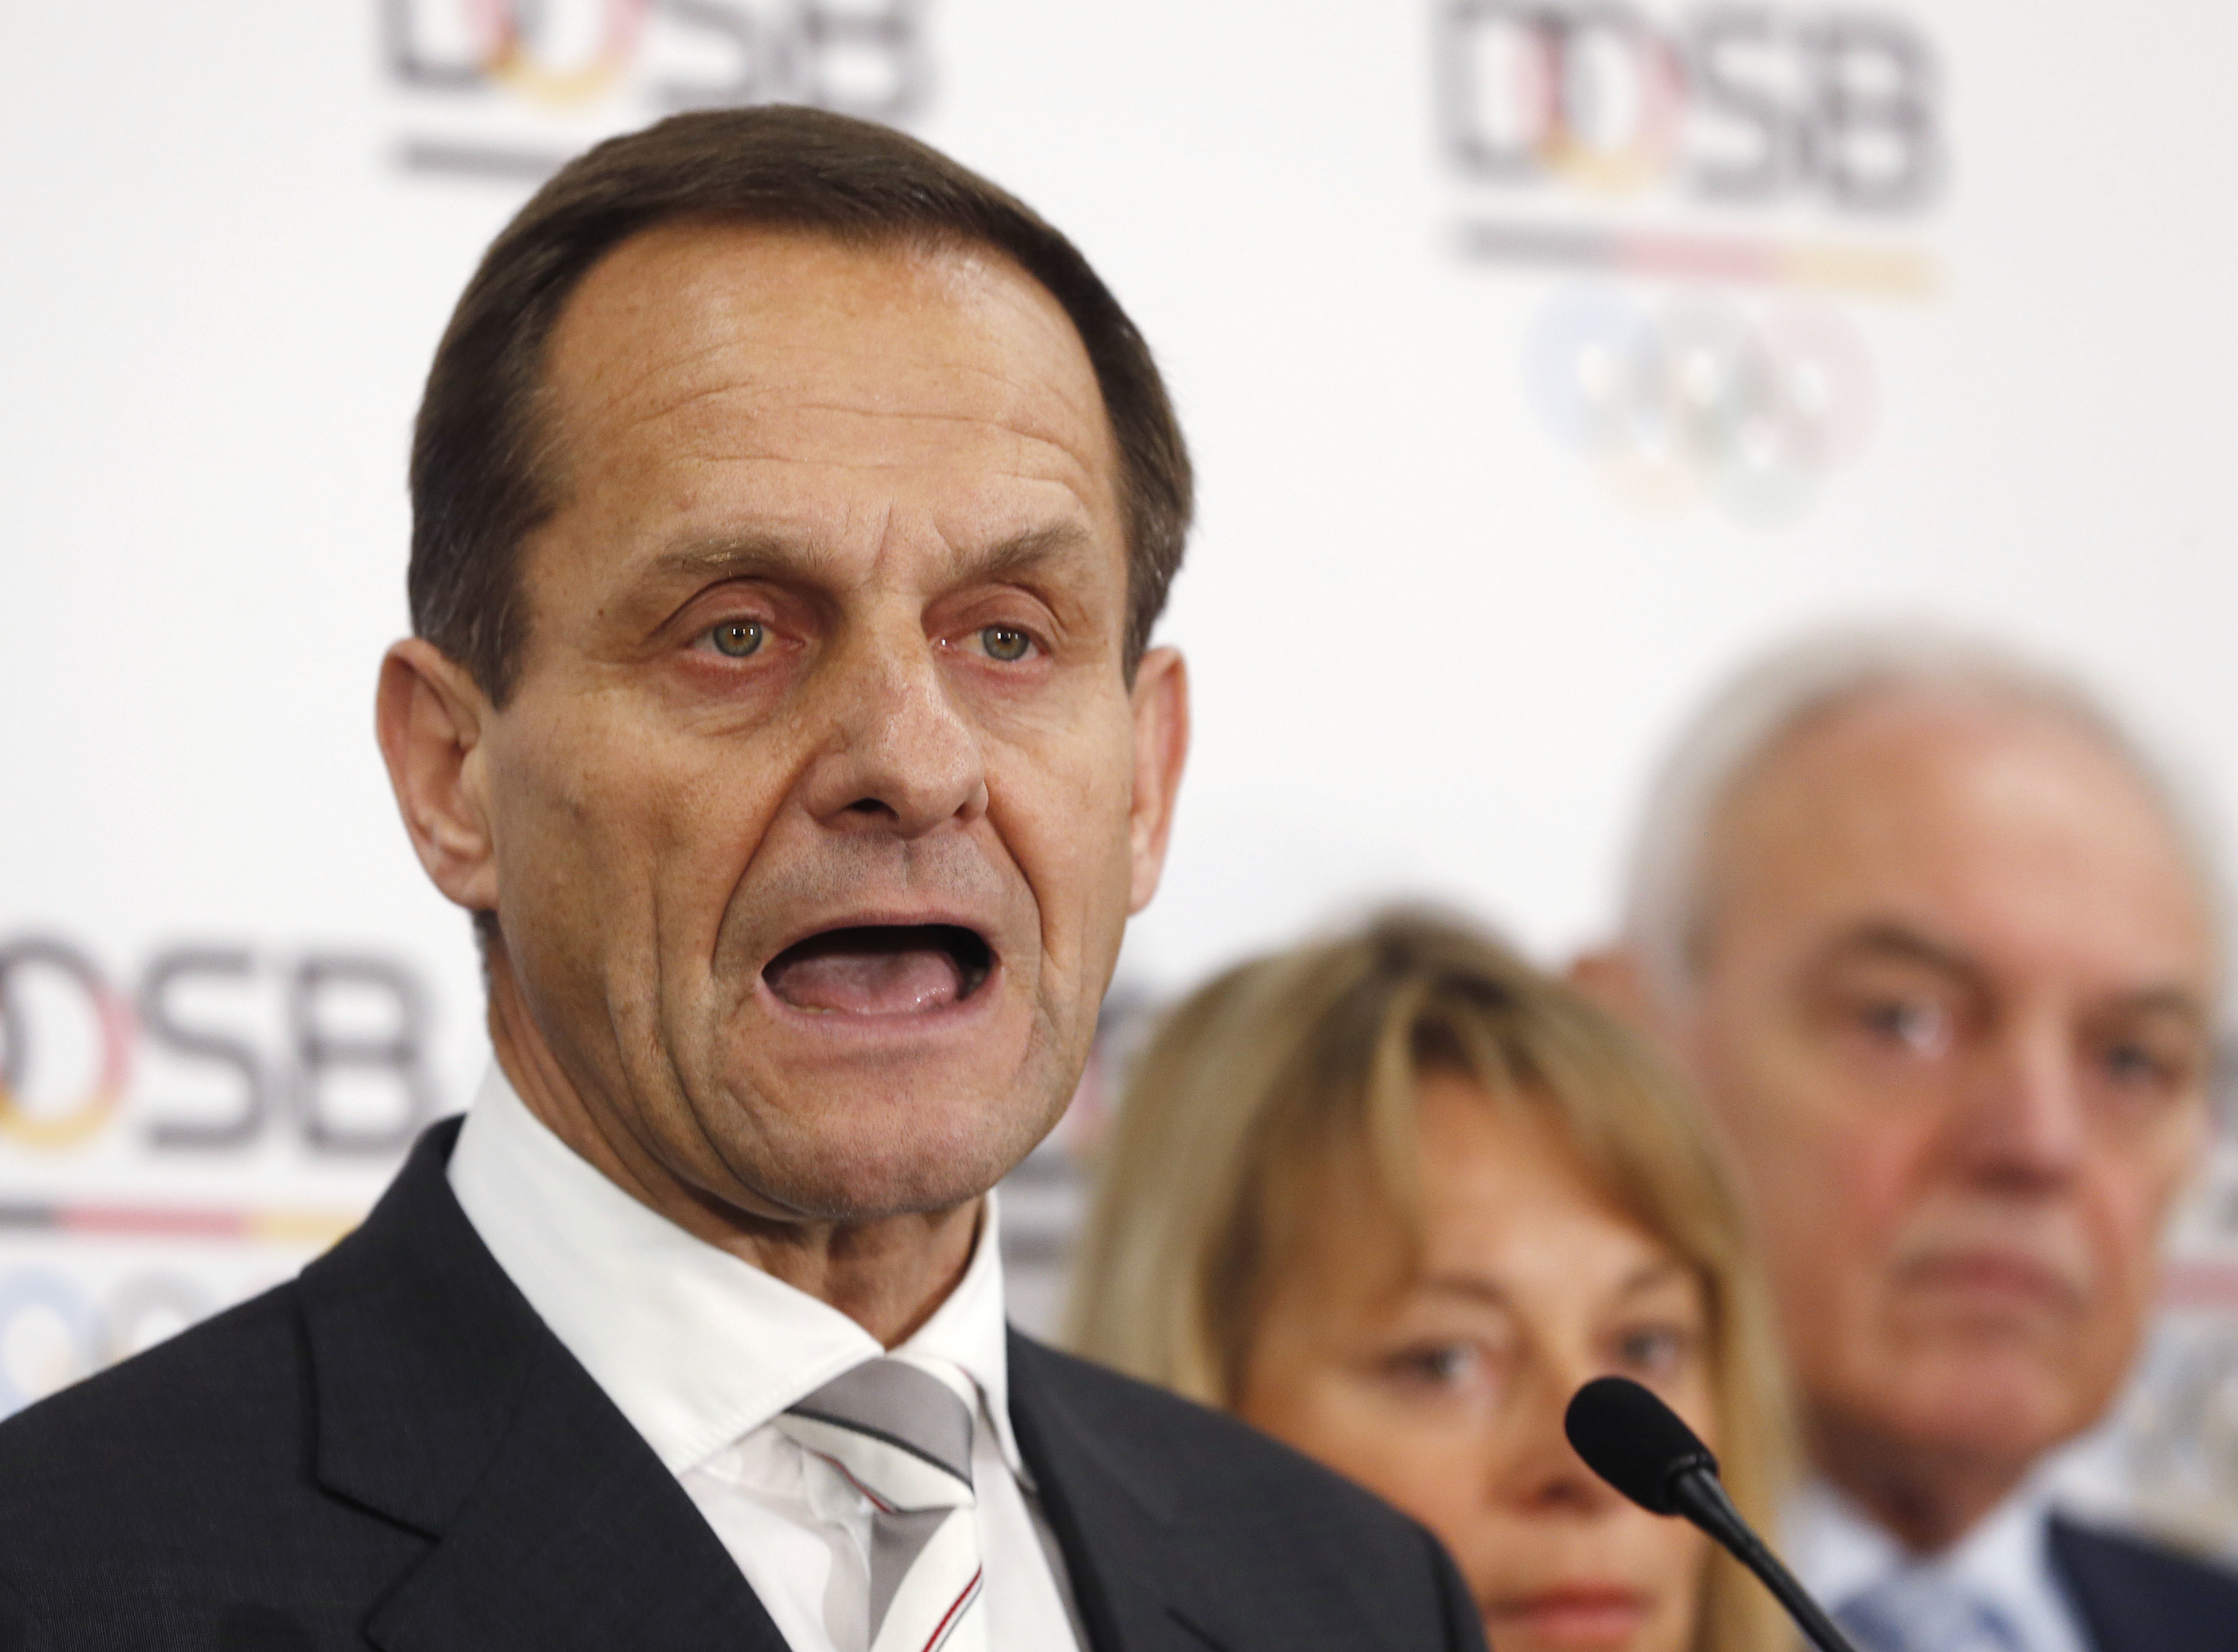 FILE - In this Monday, March 16, 2015 file photo, Alfons Hoermann, President of the German Olympic Sports Confederation DOSB makes a statement to the media, after a meeting in Frankfurt, Germany. The president of the German Olympic Committee has called fo